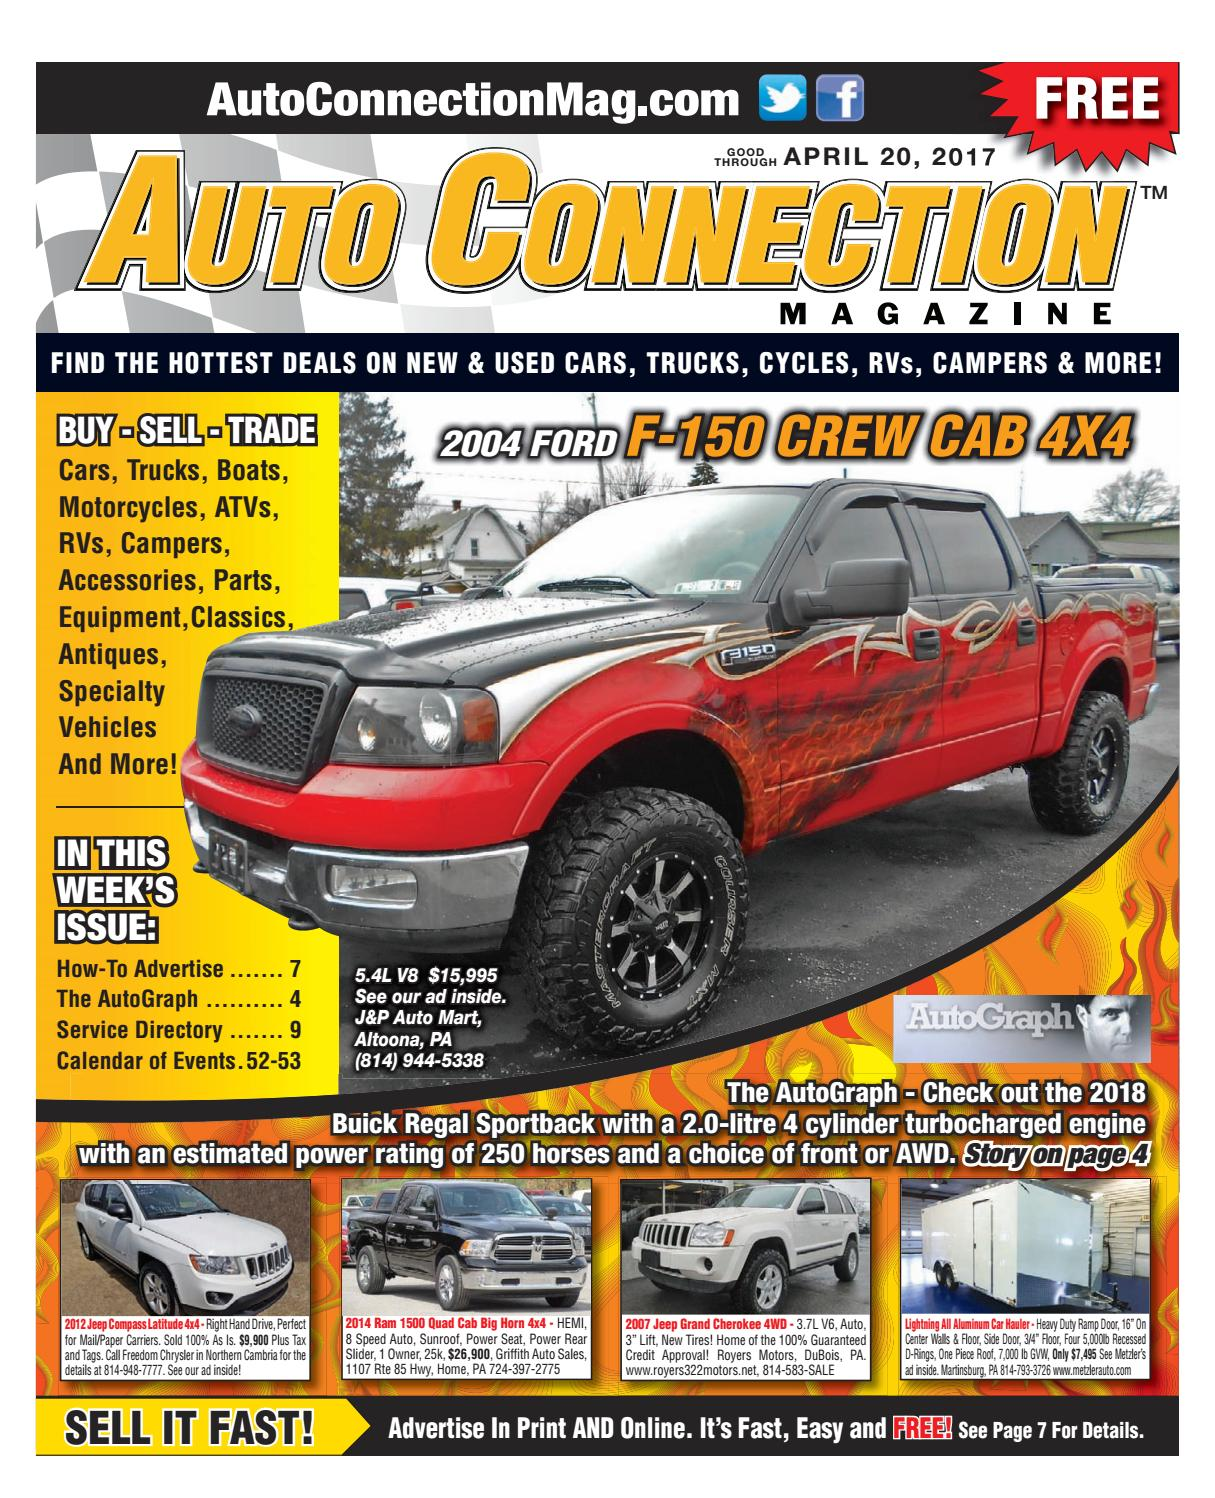 ce5f9c940825 04-20-17 Auto Connection Magazine by Auto Connection Magazine - issuu